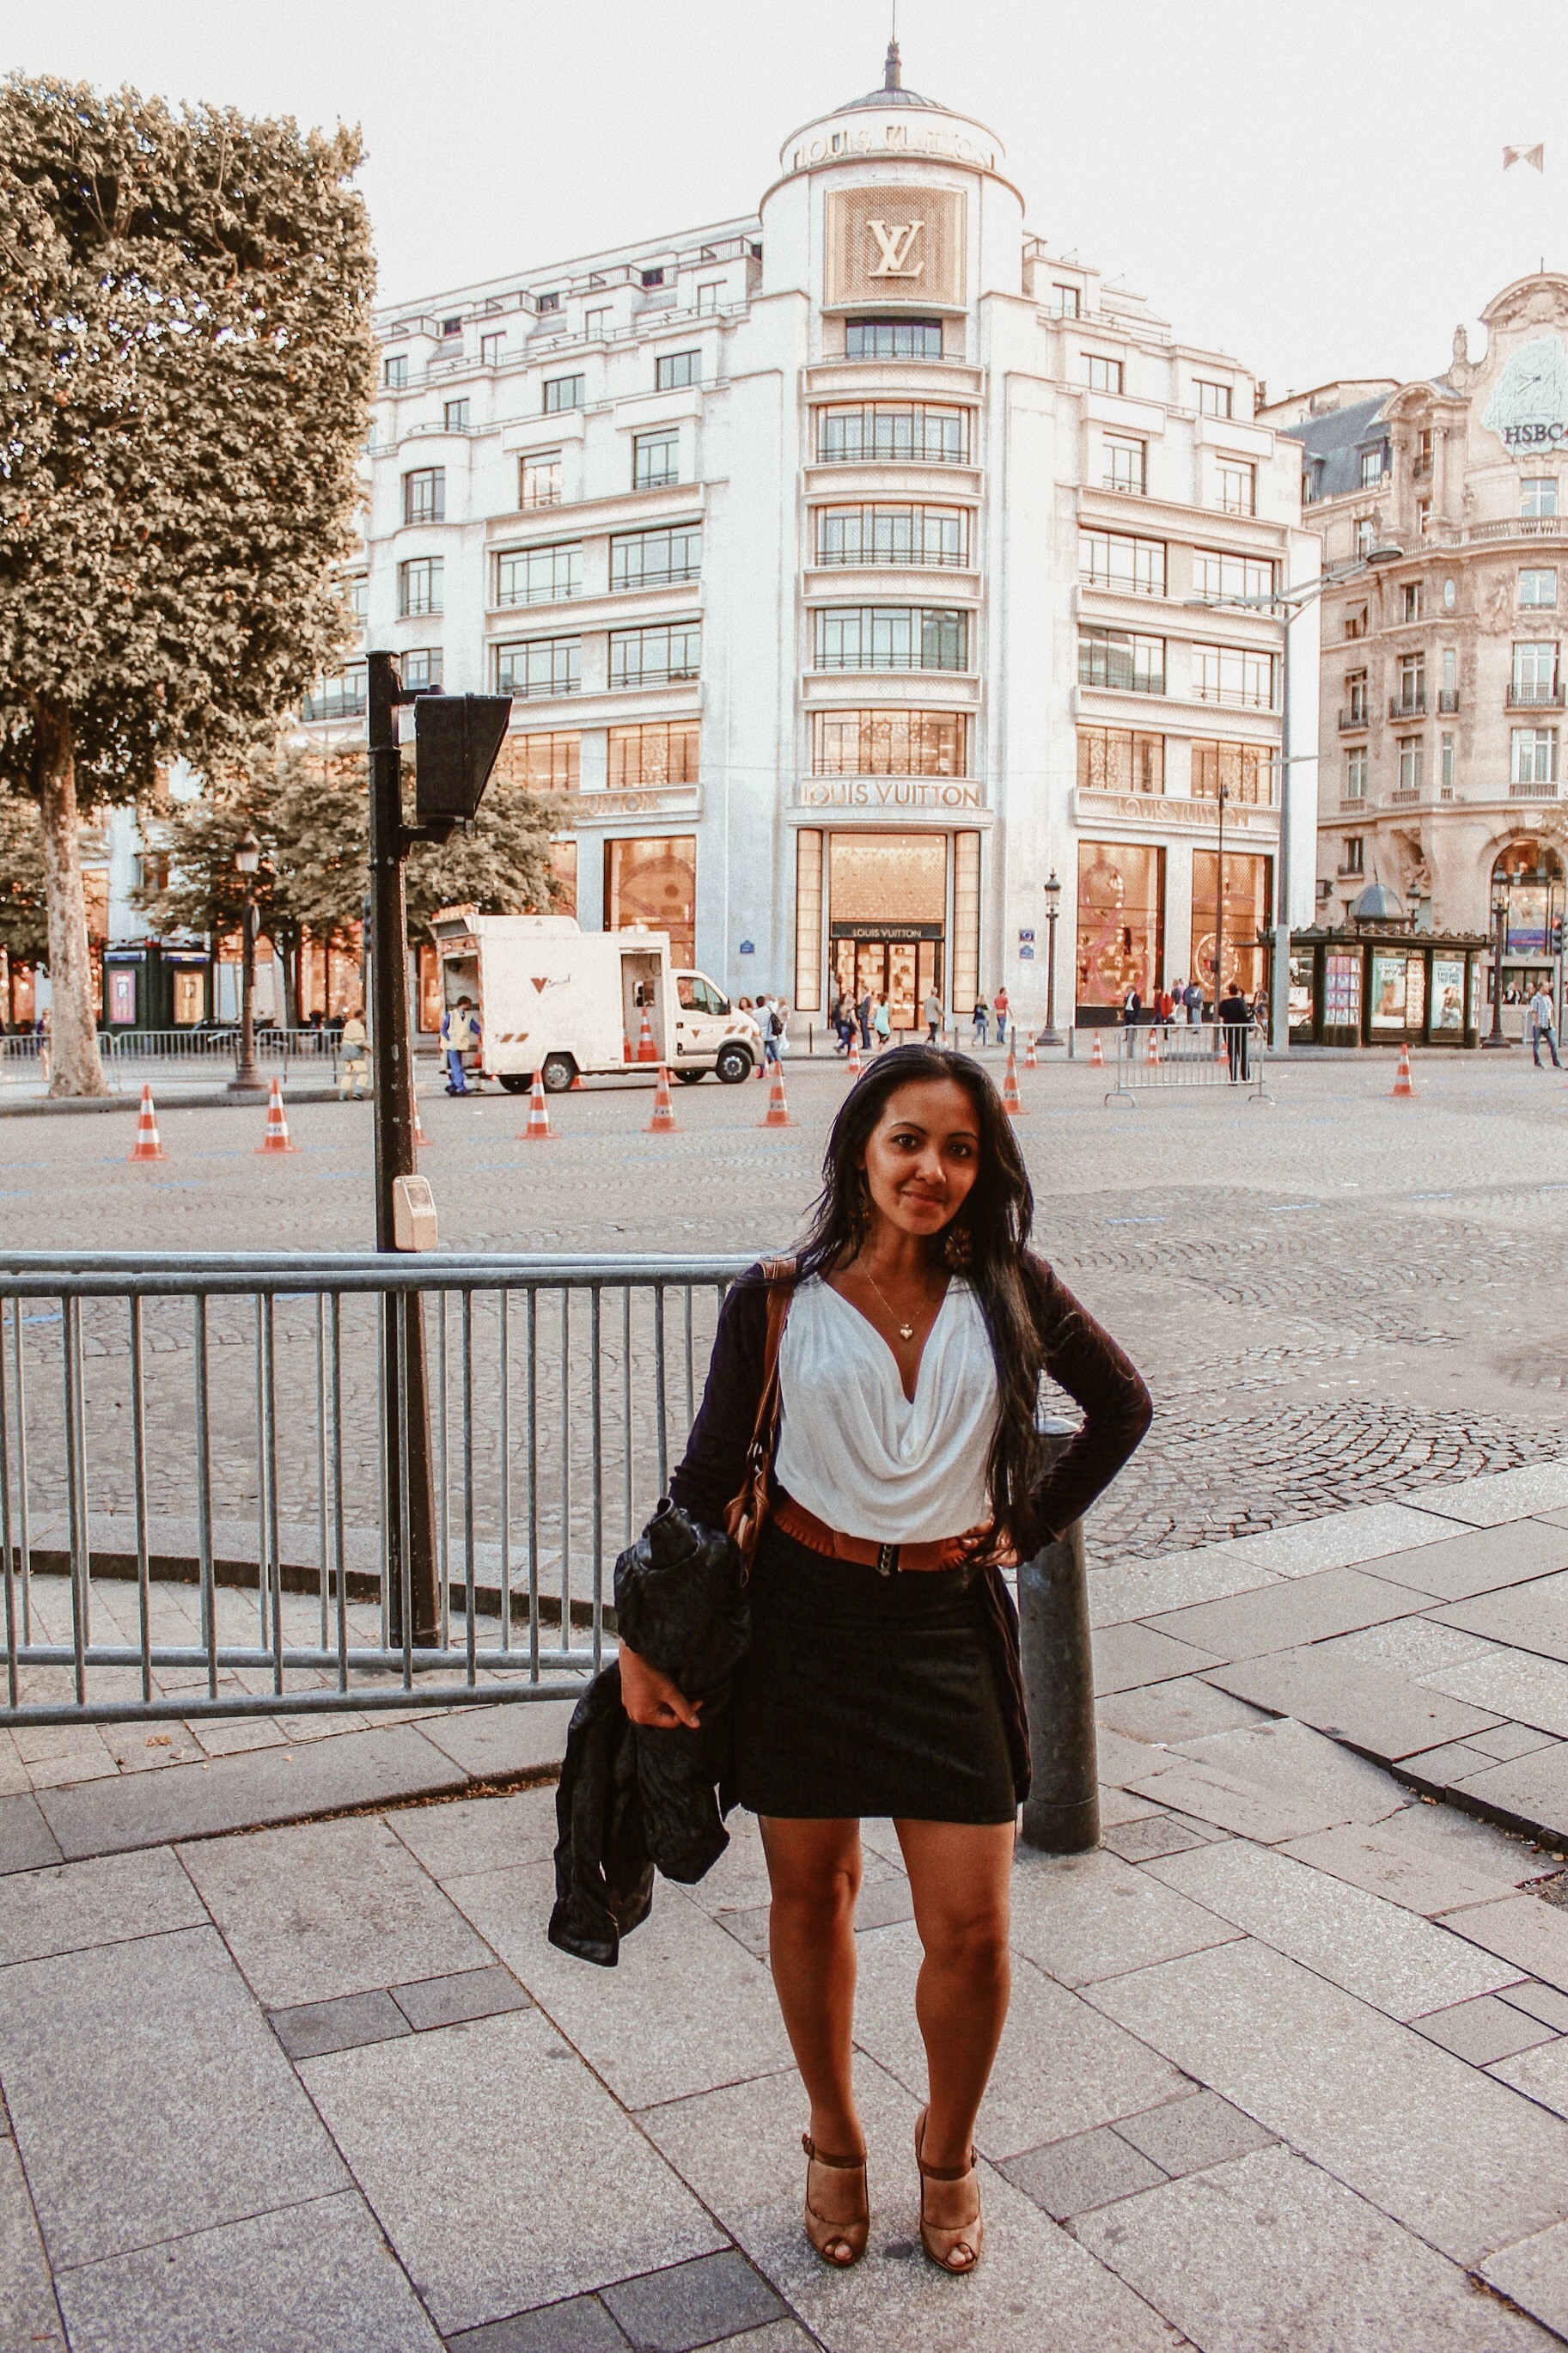 Marjolyn Lago Marj 3 to 4 days in Paris Itinerary Best Things To Do In Paris Chic Style Fashion Travel Blog Champs Elysees